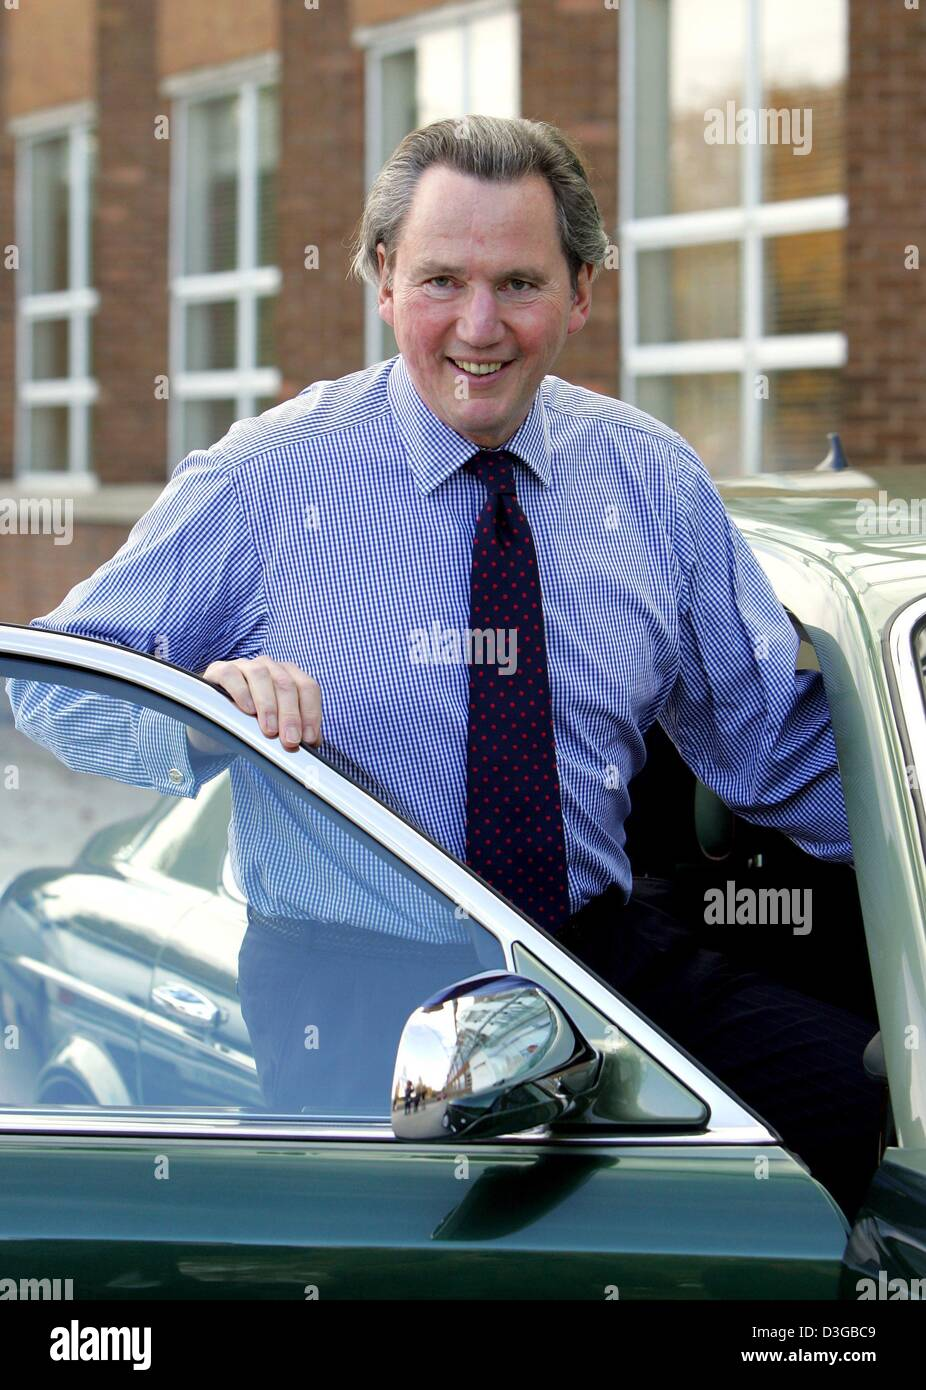 (dpa) - The chairman of the management board of British carmaker Bentley Motors, Franz-Josef Paefgen, stands in - Stock Image